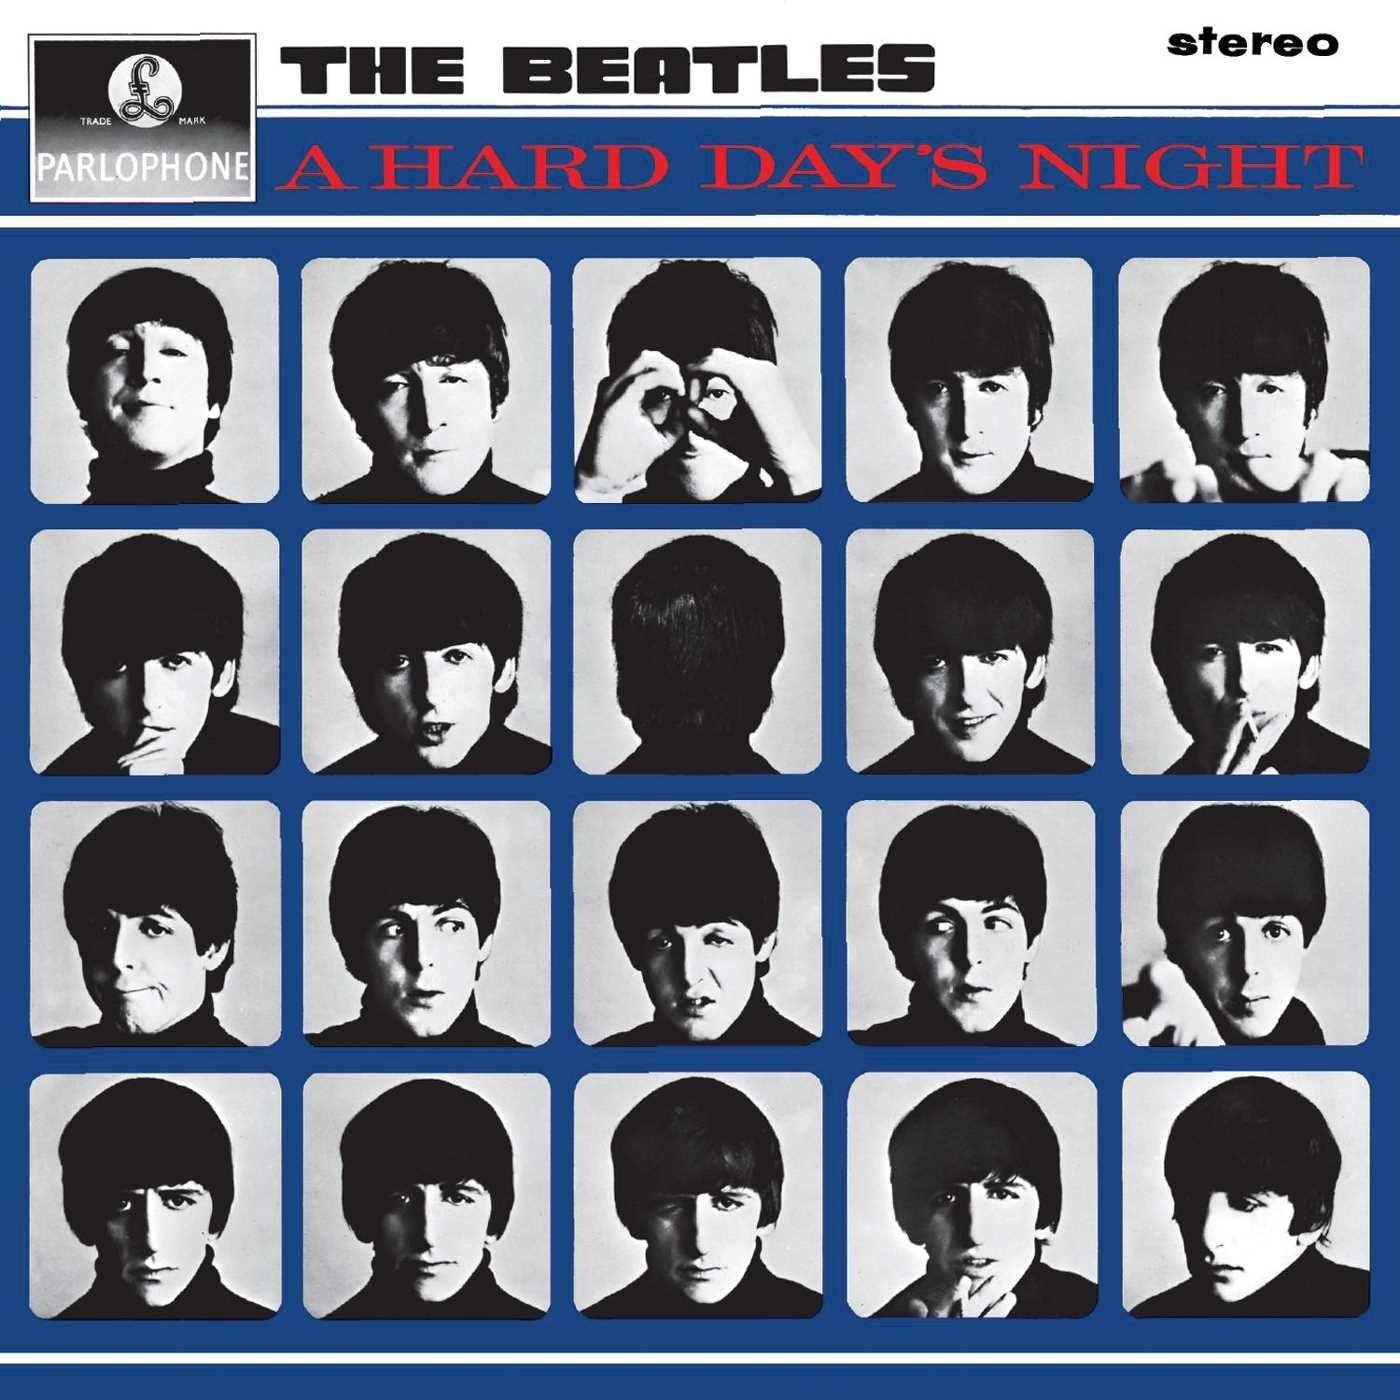 The Beatles A Hard Day's Night album 1964 cover